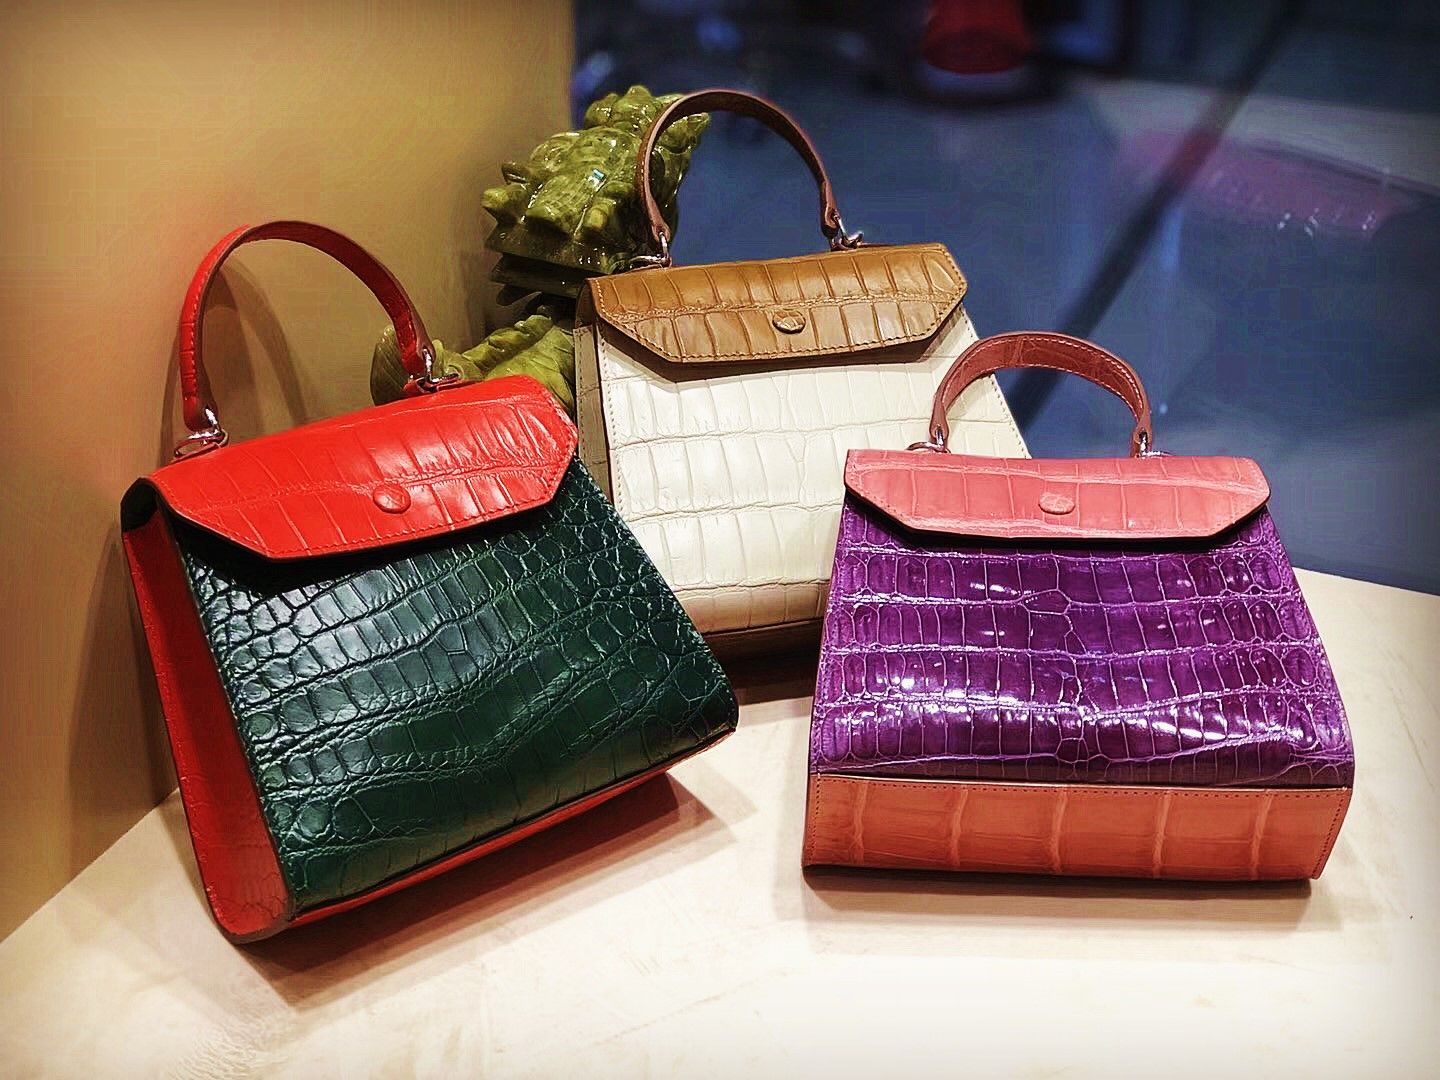 6a185abe61 Best luxury gifts for her - alligator handbag